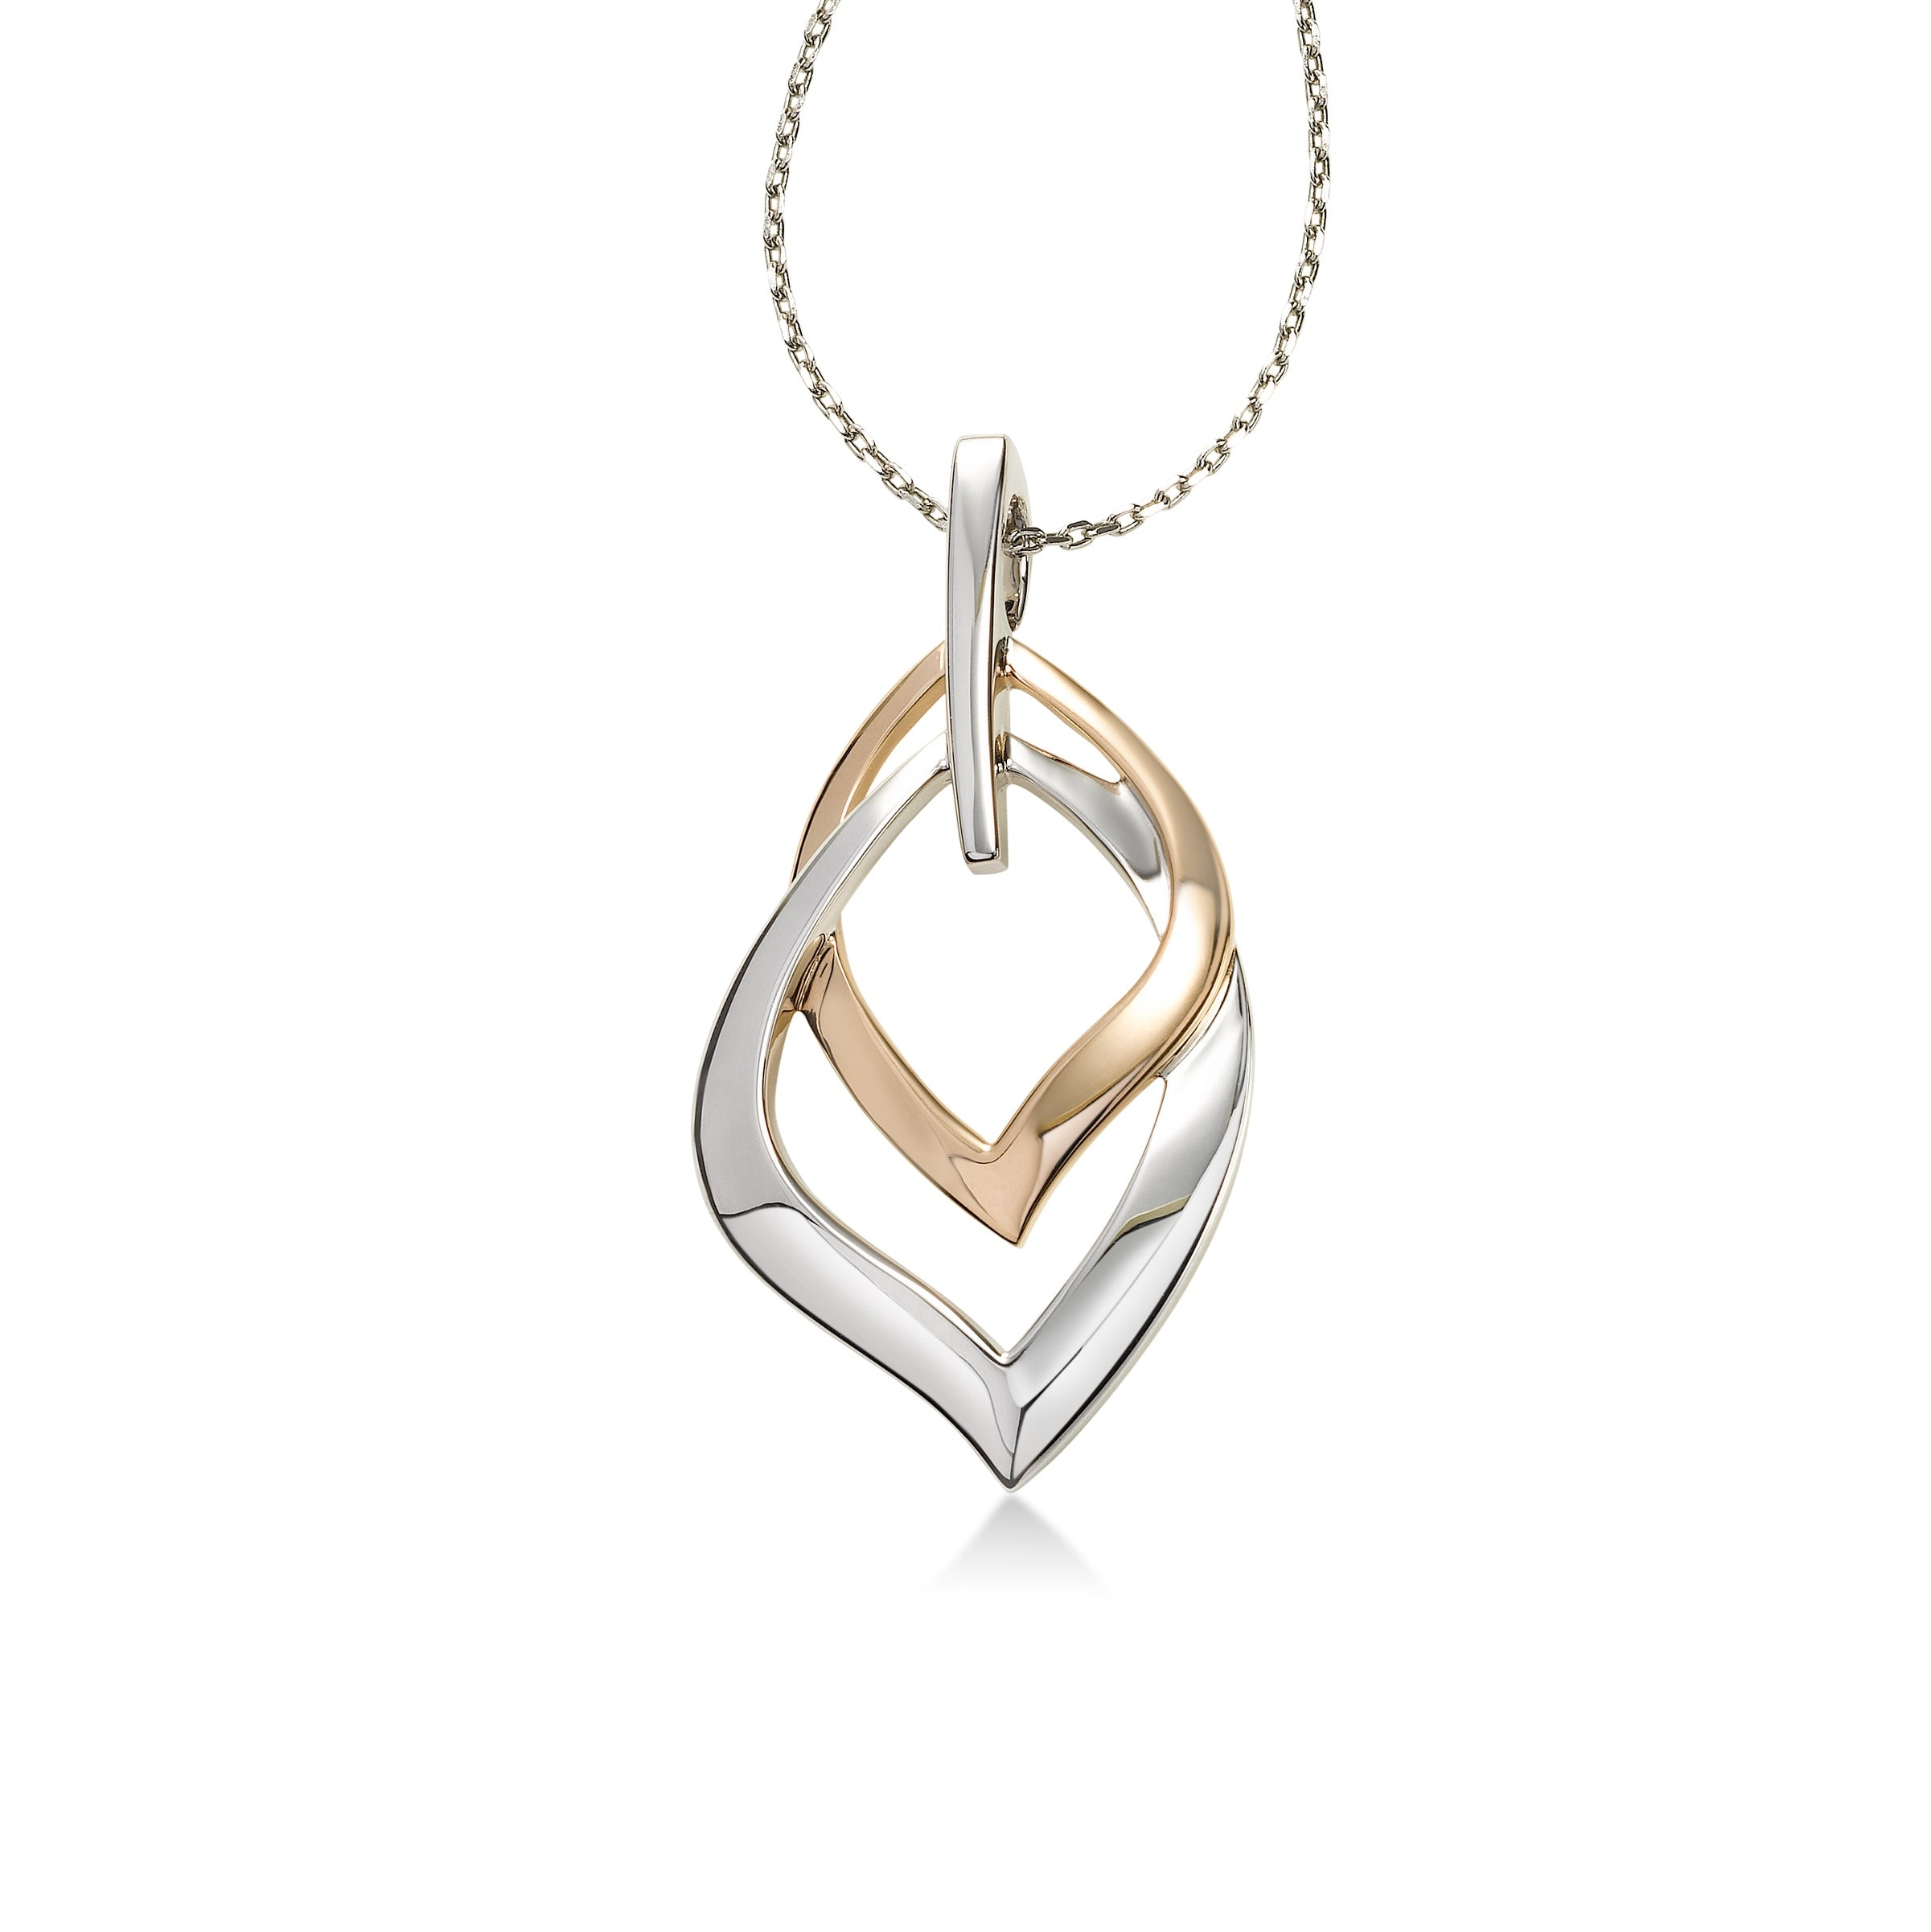 Two Tone Interlocking Link Pendant, Sterling Silver with Rose Gold Plating